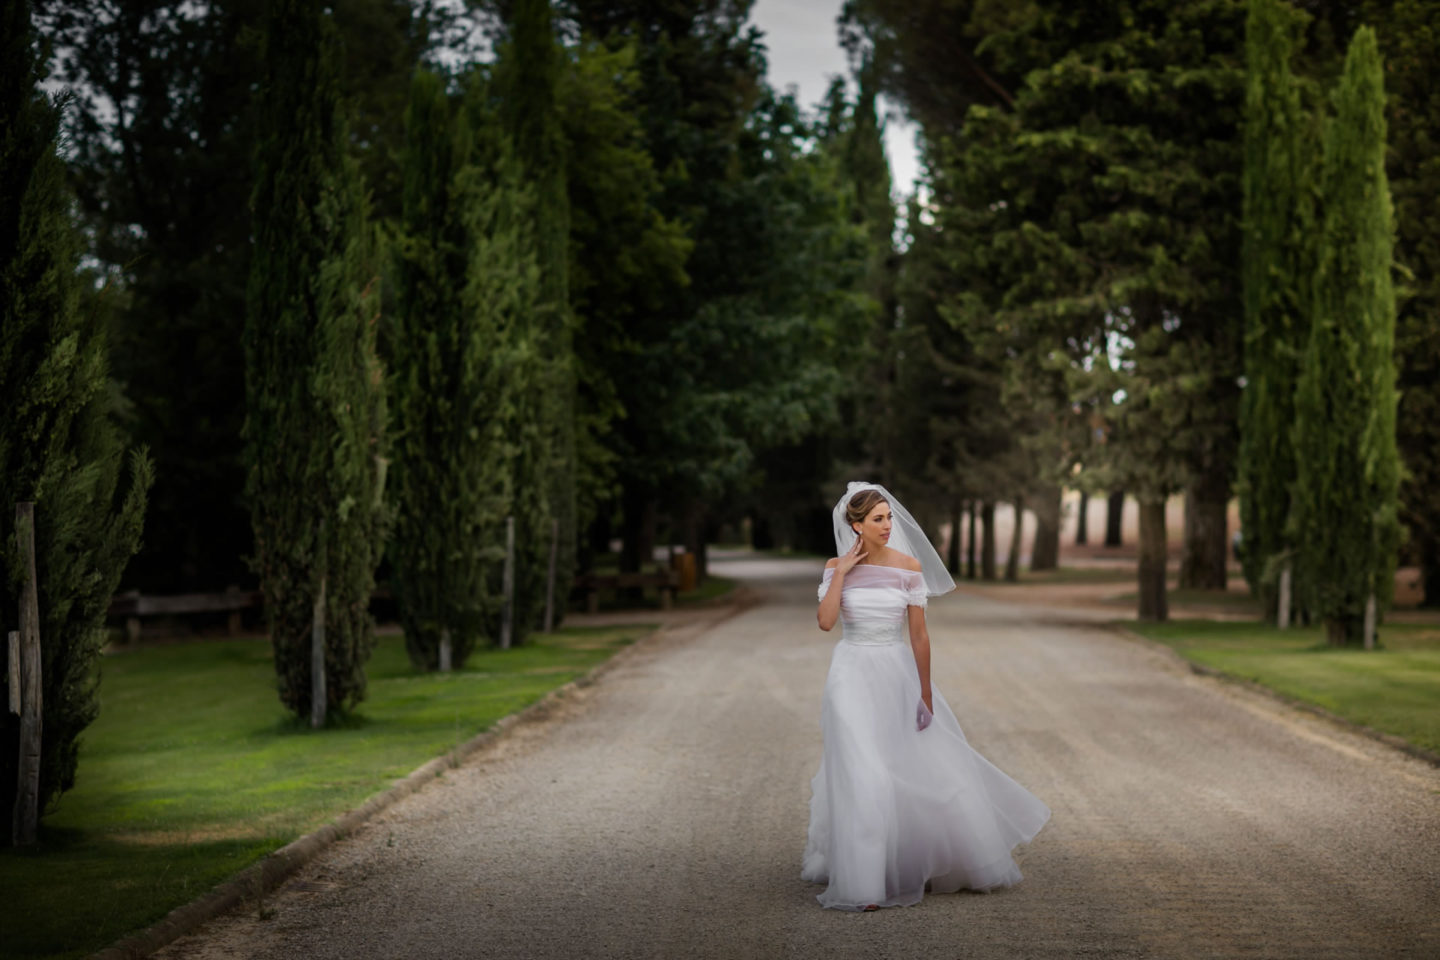 Walk :: Amazing wedding day at Il Borro :: Luxury wedding photography - 24 :: Walk